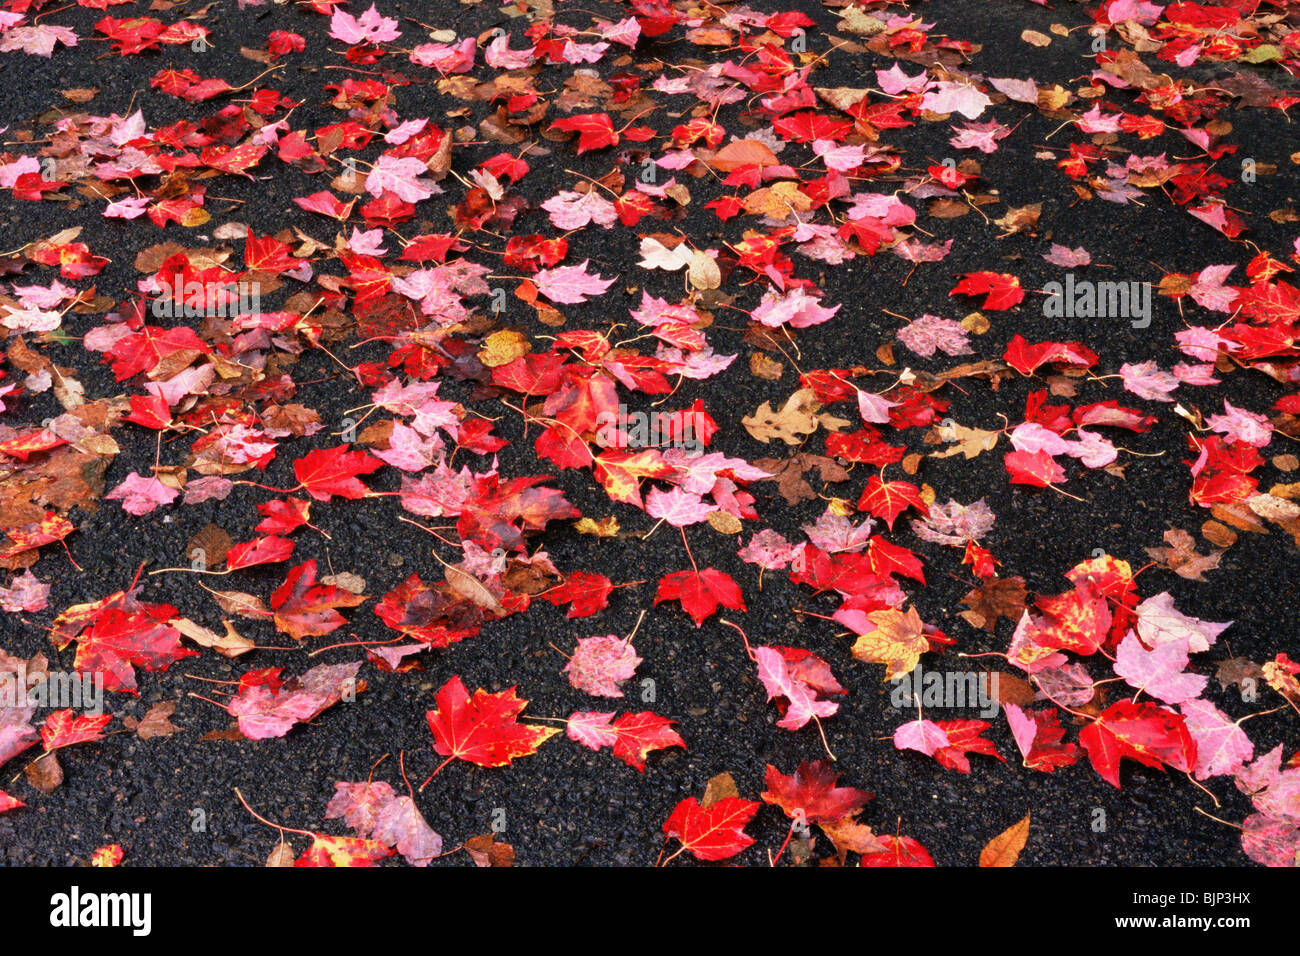 Autumn leaves on a pavement Stock Photo